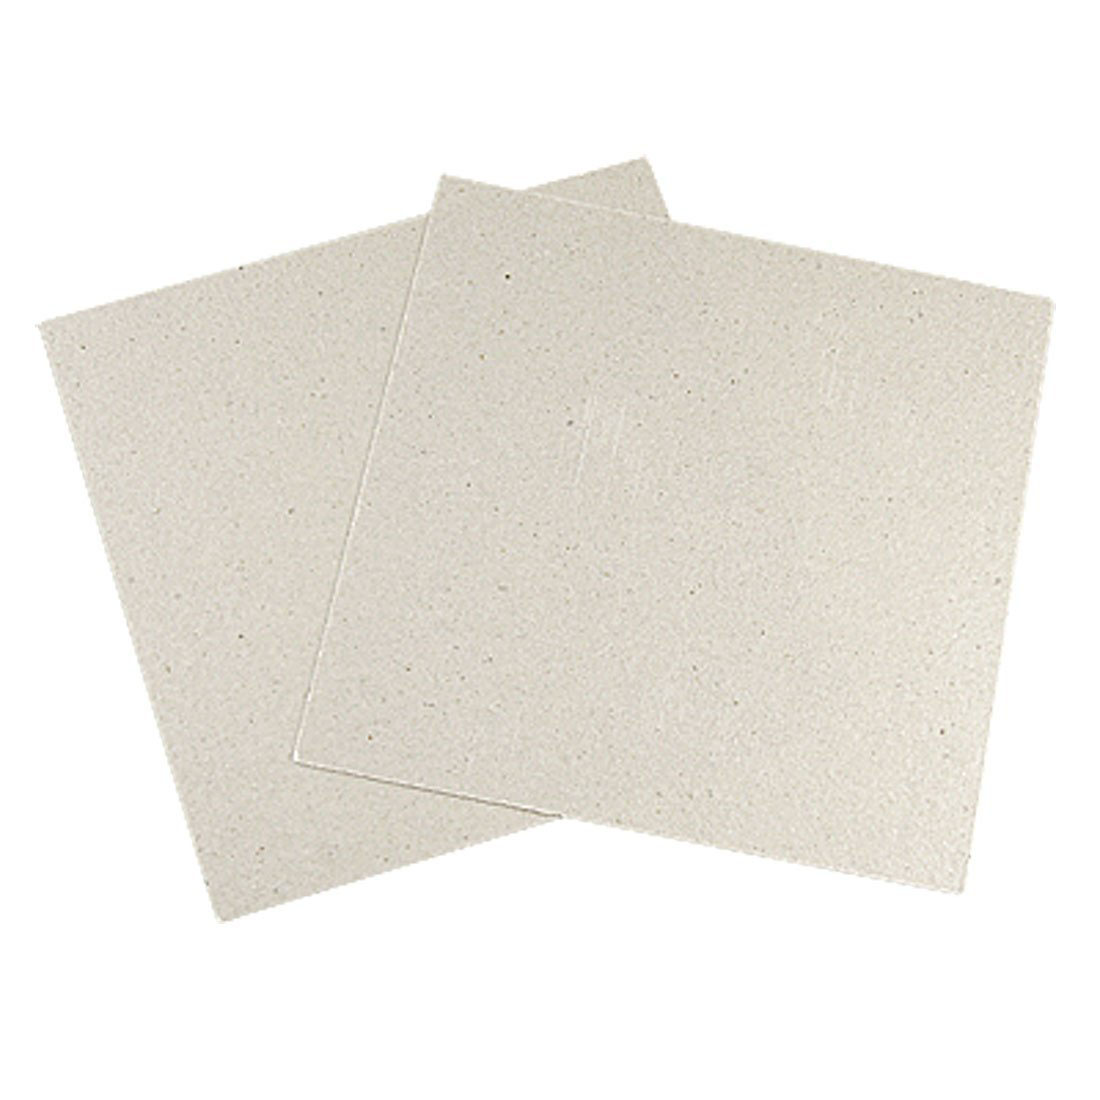 2 Pcs Microwave Oven Repairing Part Mica Plates Sheets 4.8